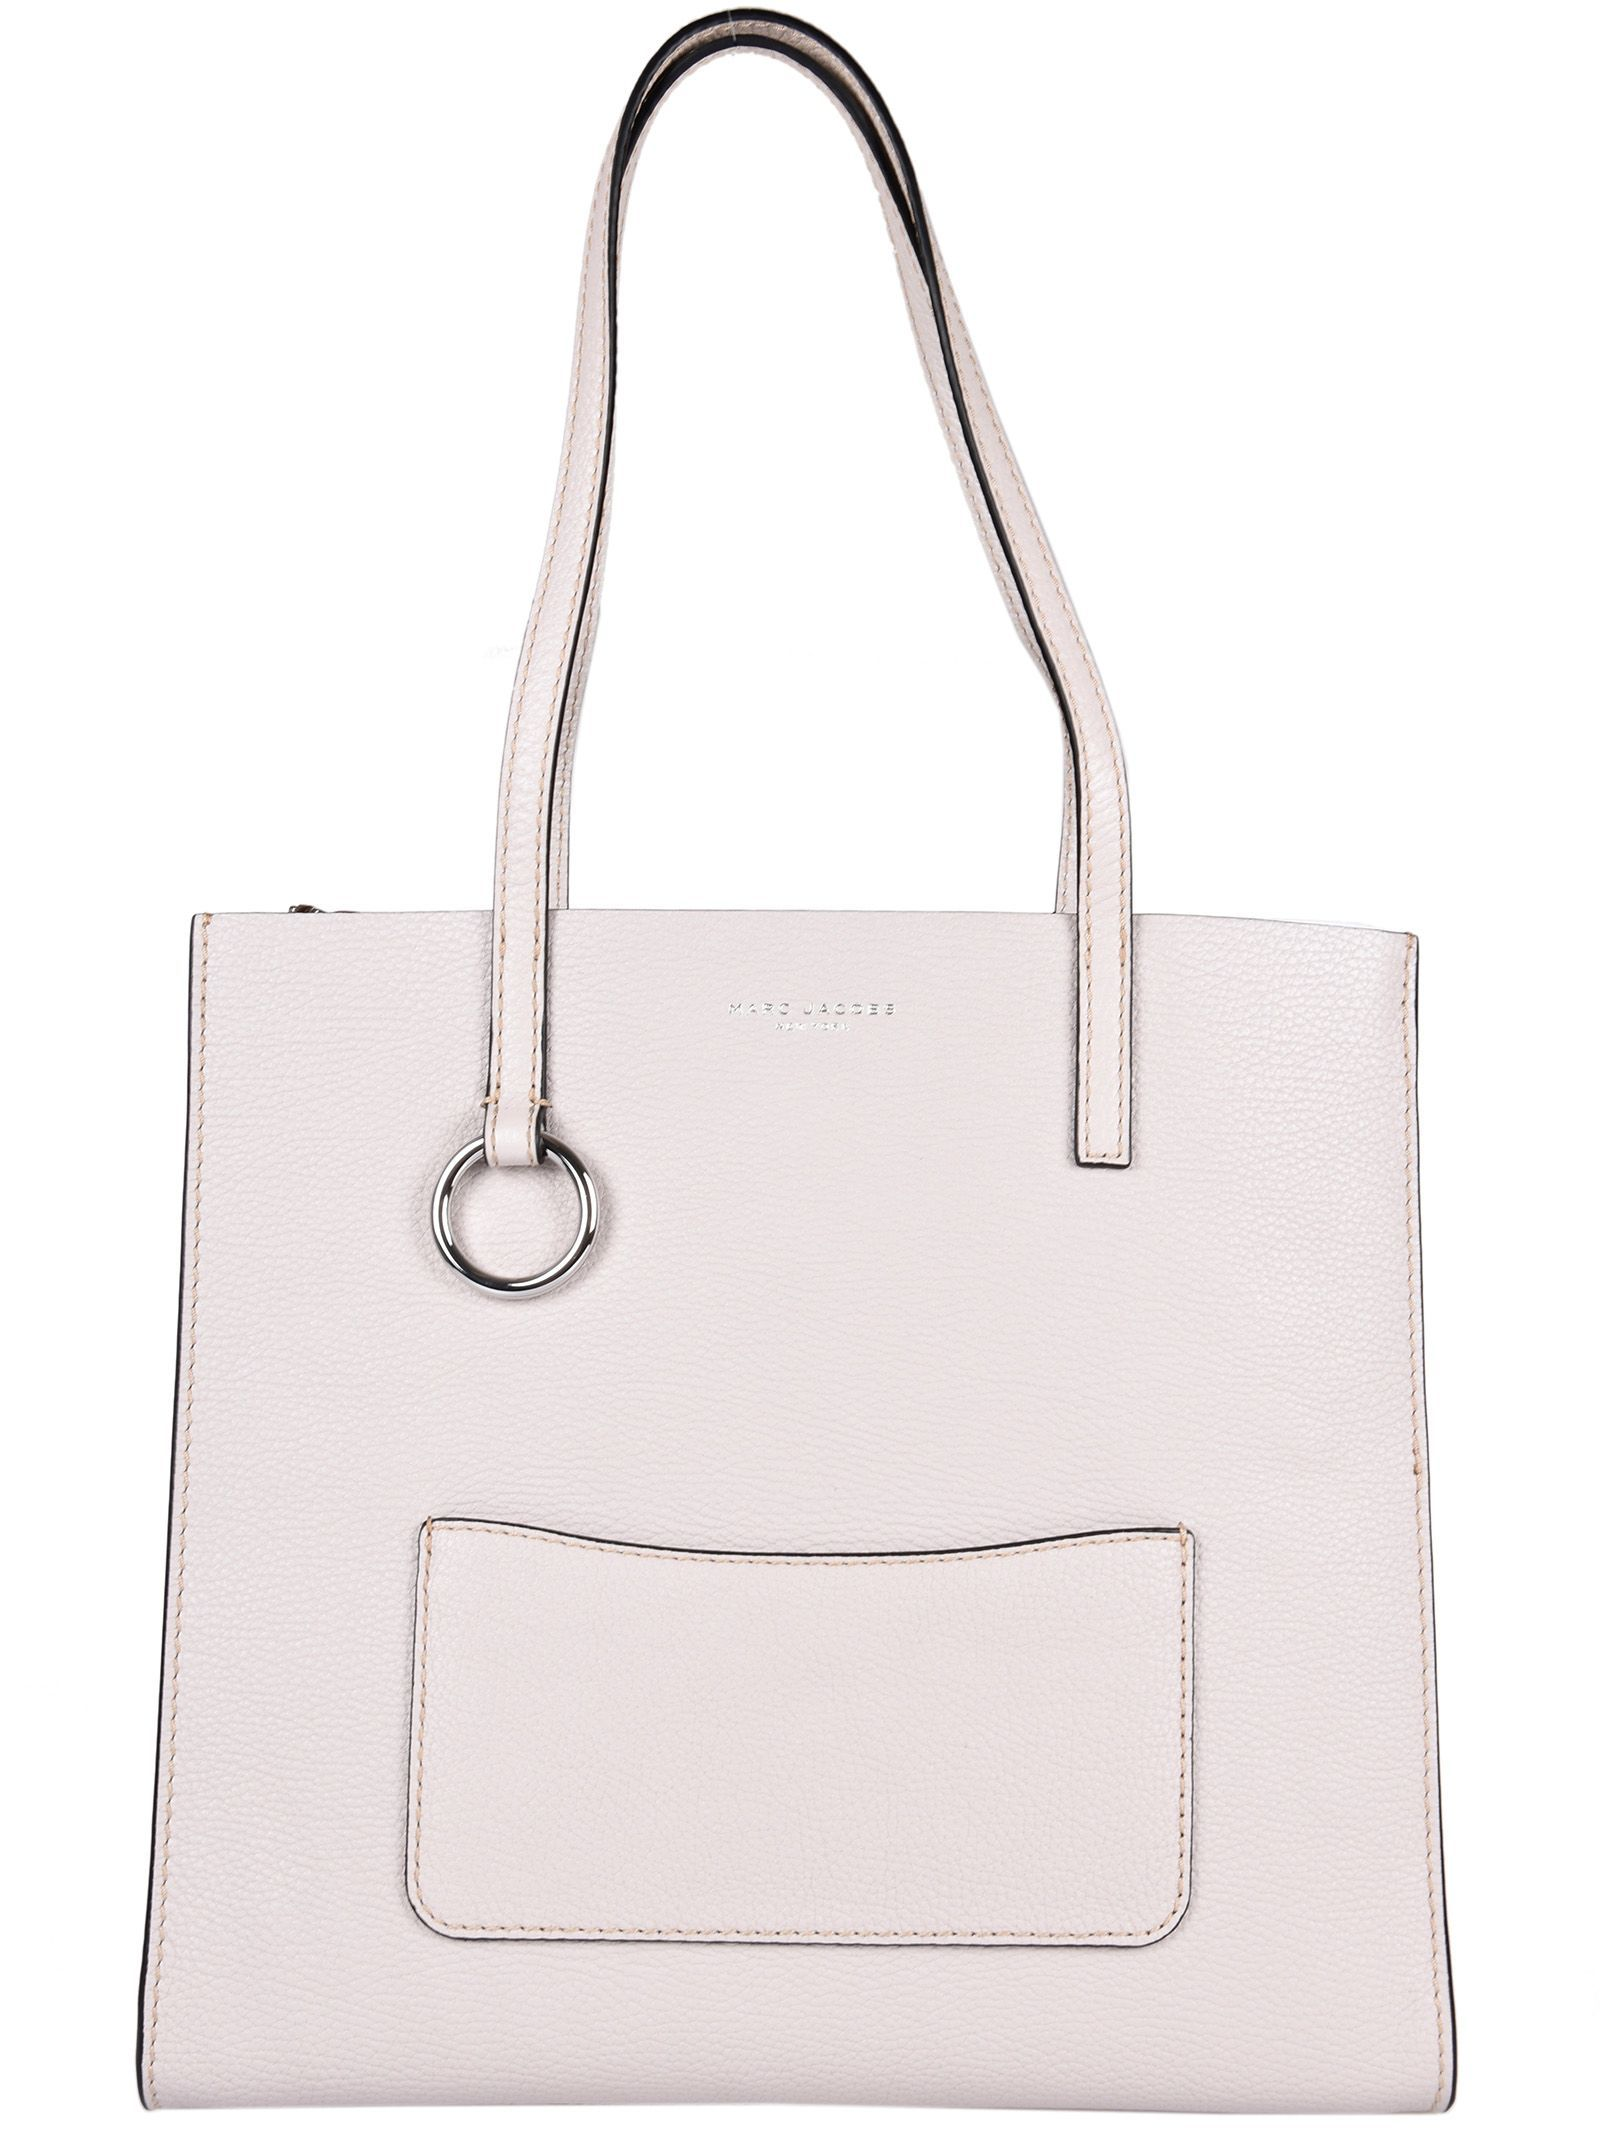 3a51904de147 MARC JACOBS THE BOLD GRIND TOTE BAG.  marcjacobs  bags  leather  hand bags   tote